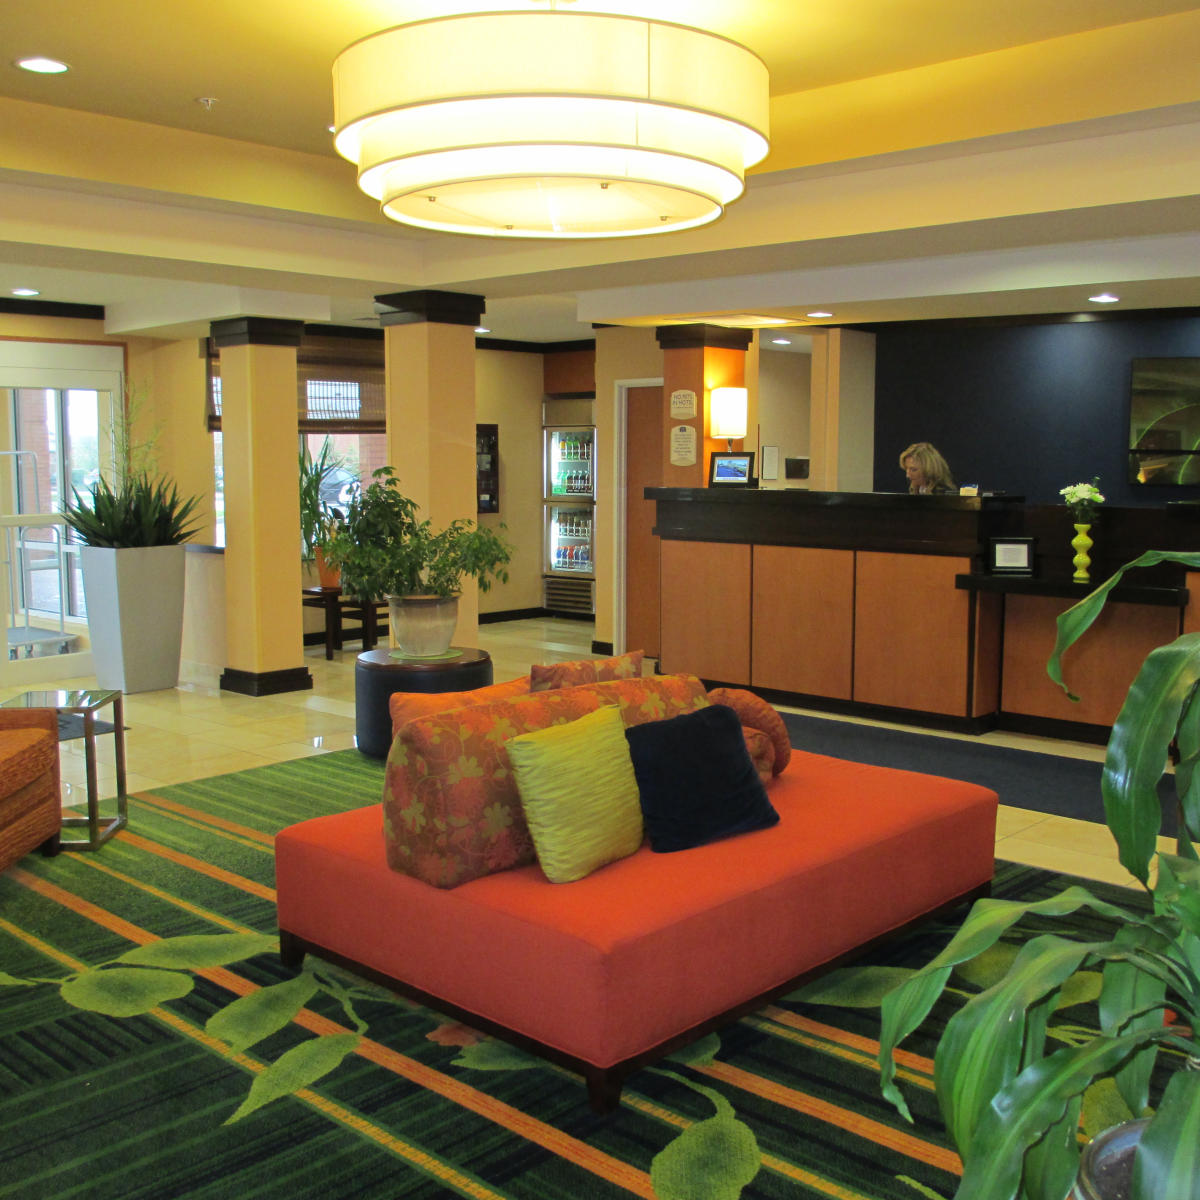 CROPPED SQUARE Fairfield Inn & Suites lobby in Avon